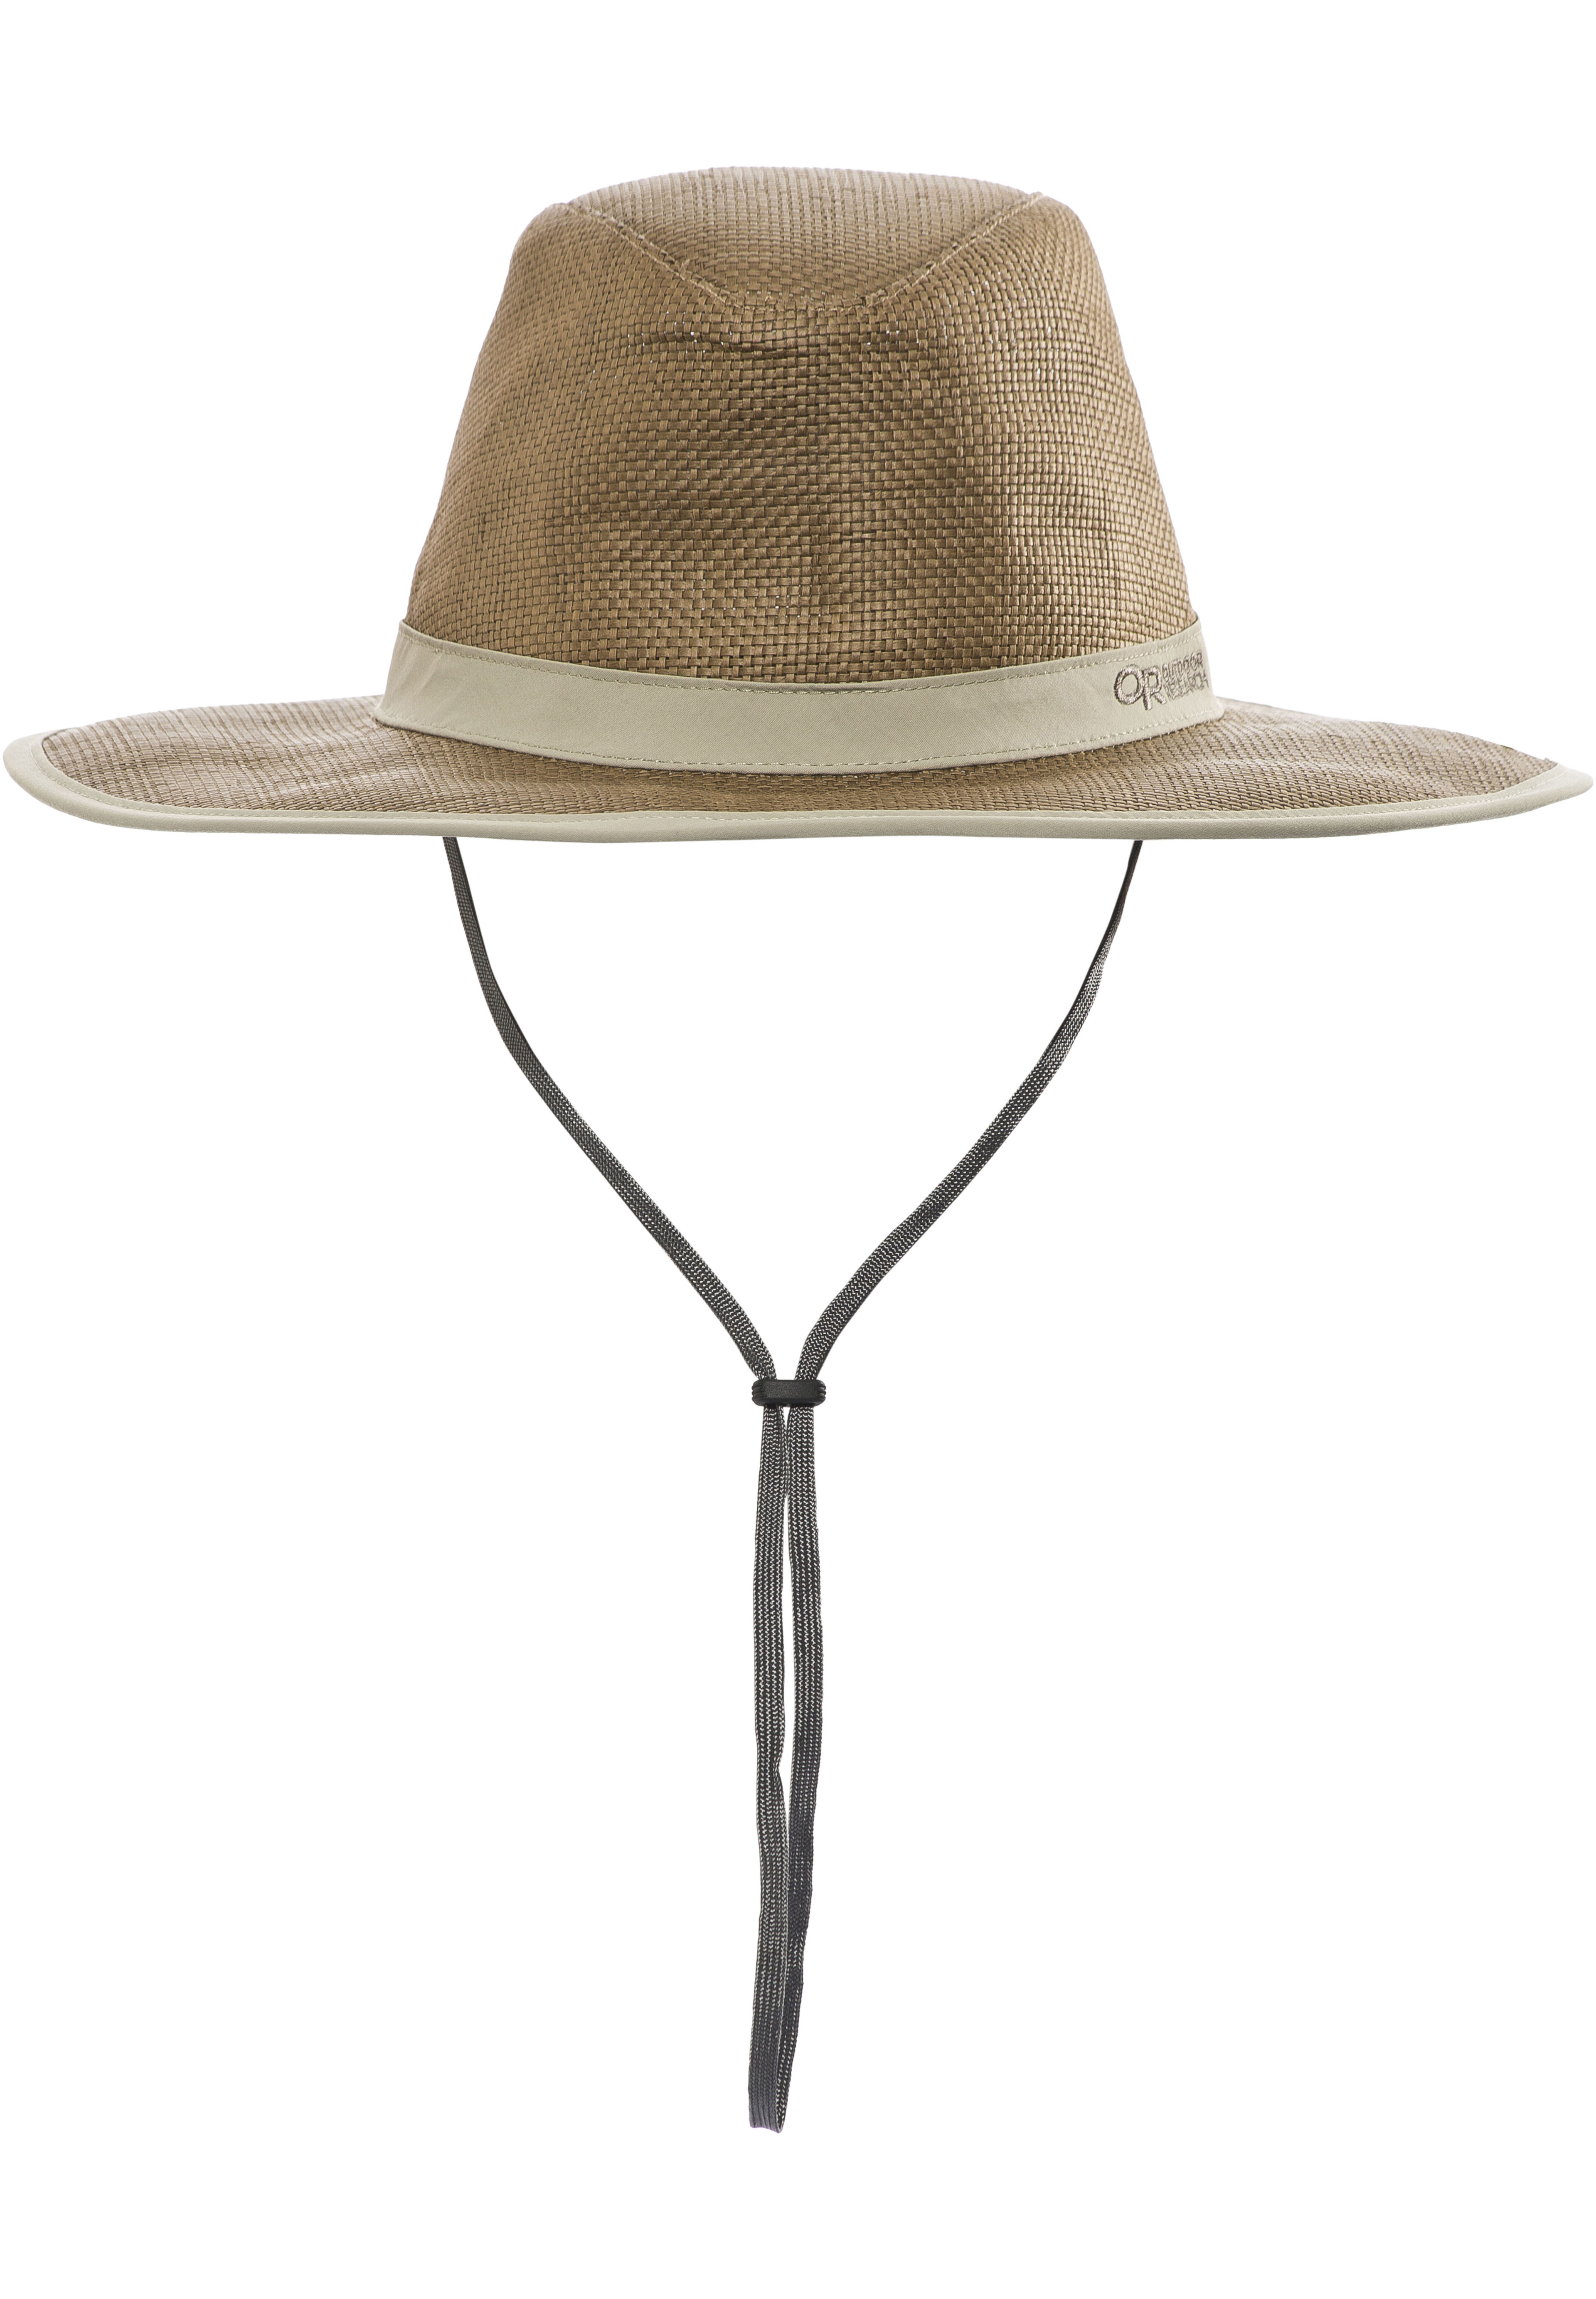 Outdoor Research Papyrus Brim Headwear beige brown at Addnature.co.uk 8d443025b18